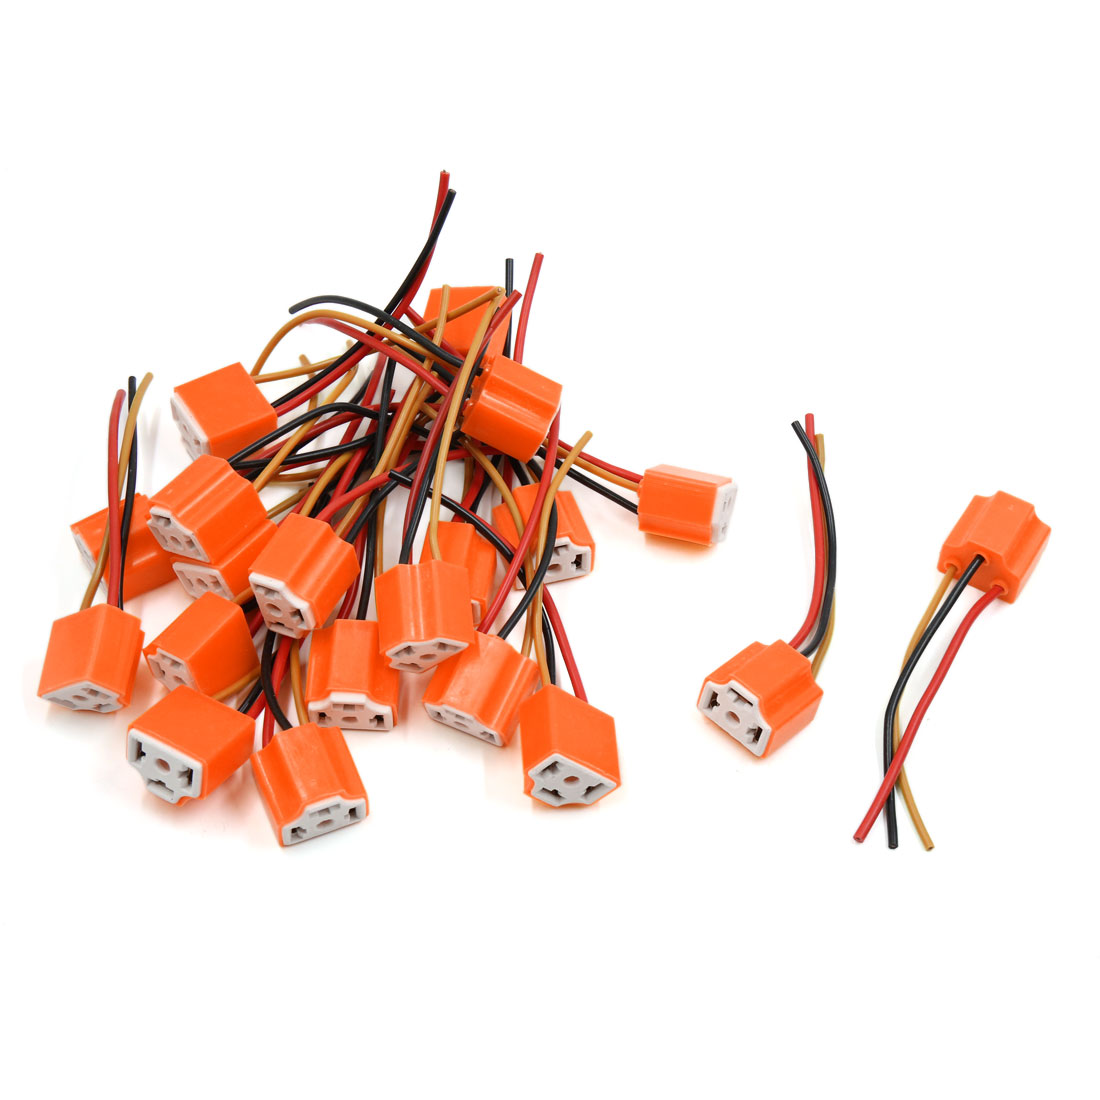 20pcs Orange Ceramic H4 Light Extension Wiring Harness Socket Connector for Car